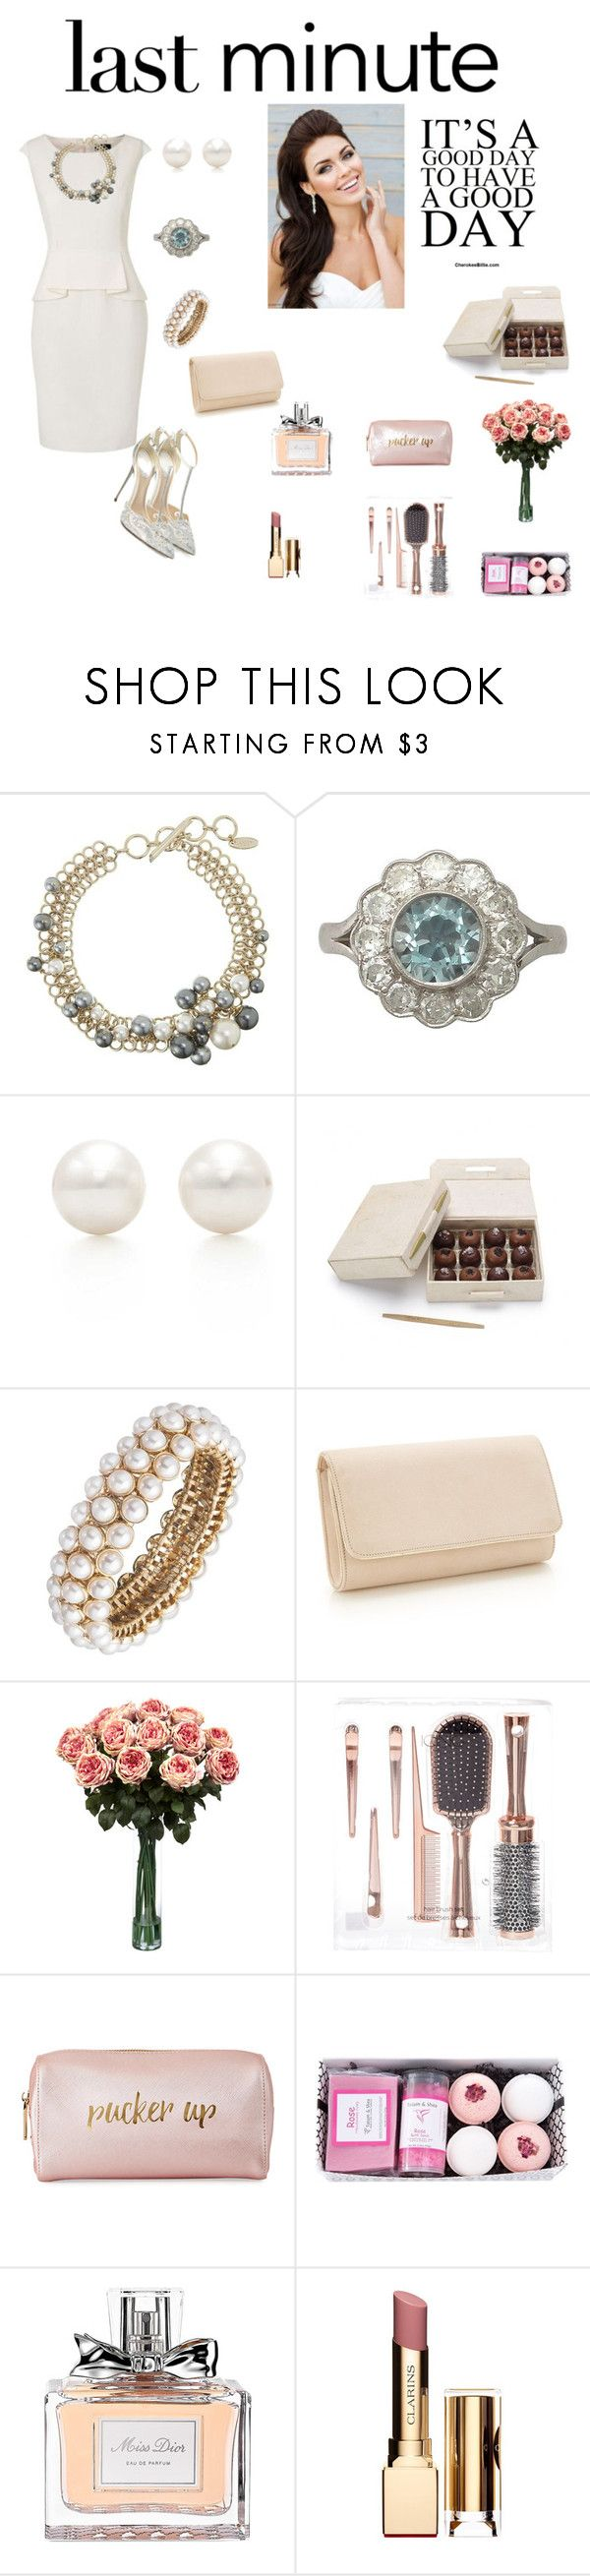 """""""Presentes de última hora férias"""" by daianetavares310 ❤ liked on Polyvore featuring Lanvin, Tiffany & Co., Anne Klein, Christian Louboutin, Nearly Natural, Neiman Marcus, Christian Dior, Clarins and Holidaygifts"""